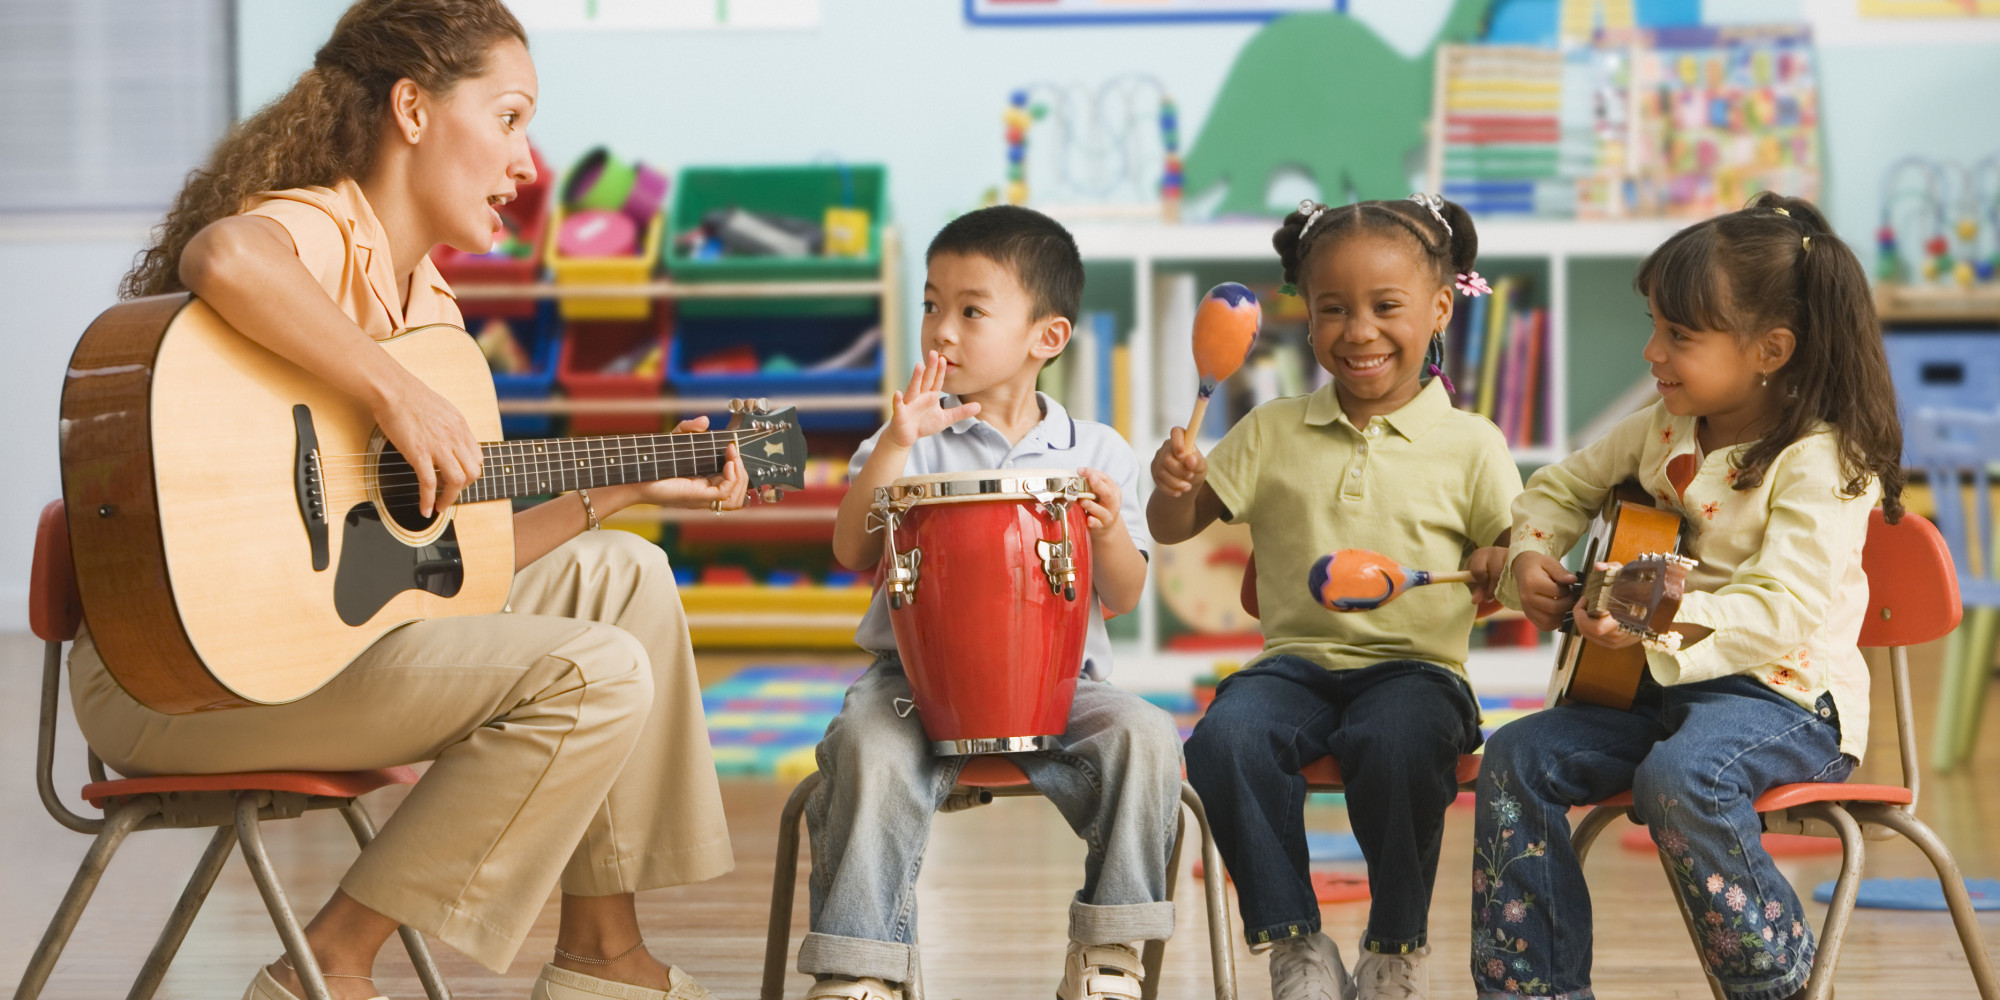 Teaching Music To Children - Lawteched